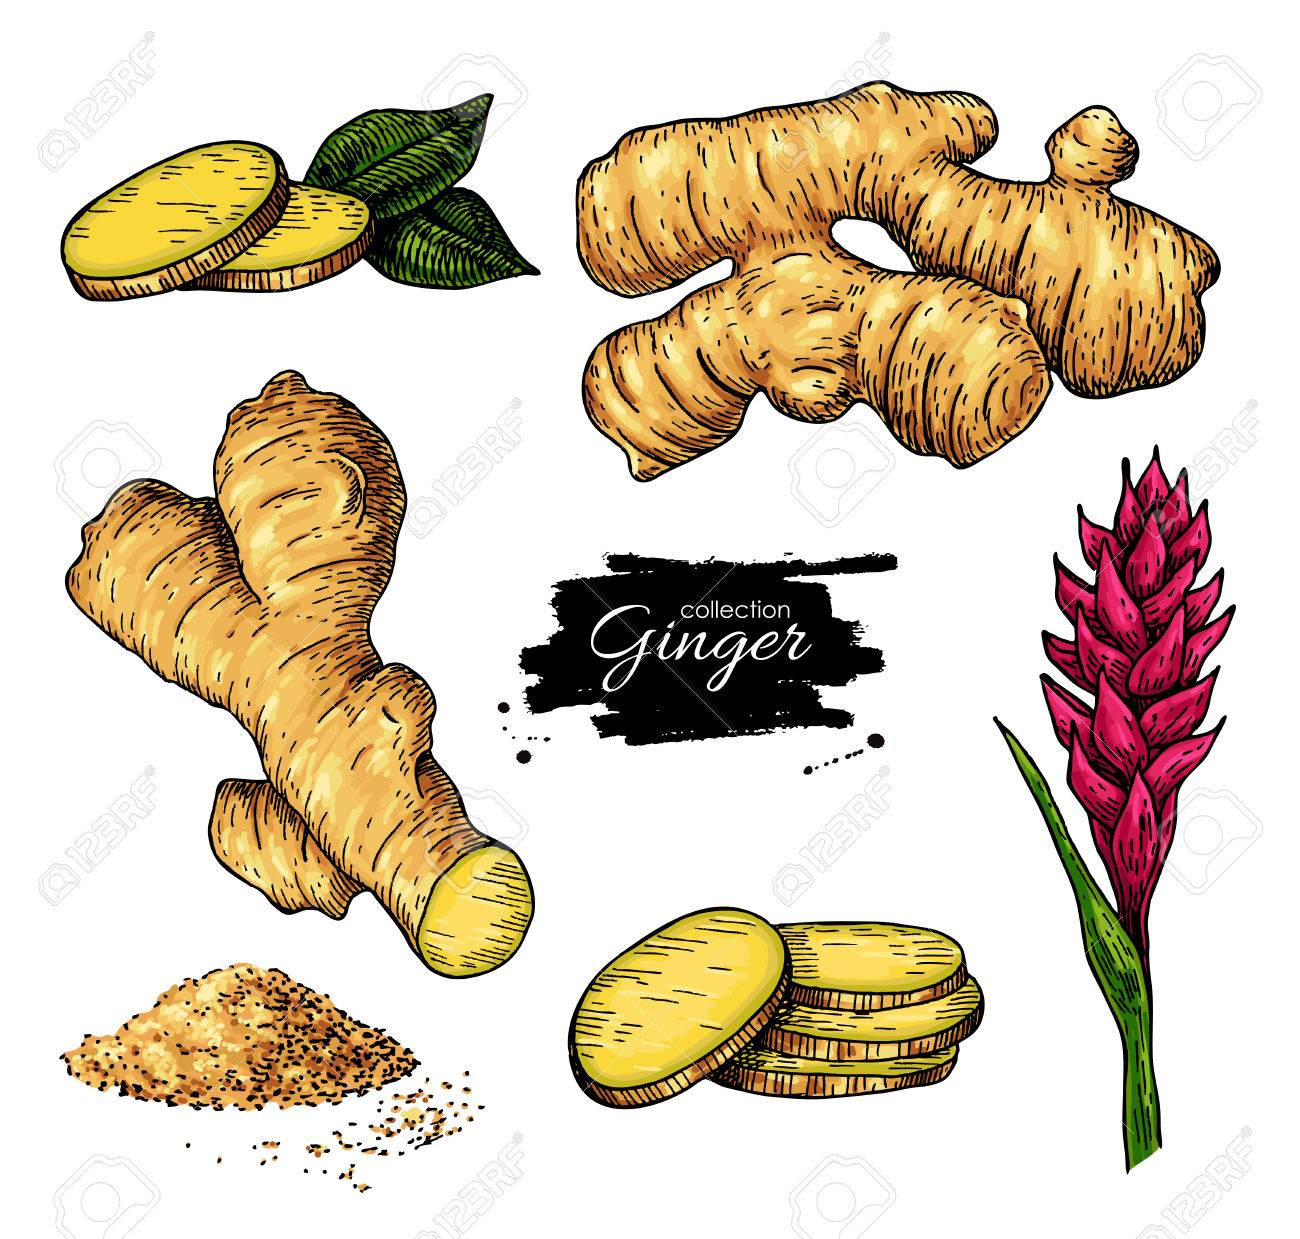 Ginger set. Vector hand drawn root, sliced pieces, powder and flower. Artistic style colorful flavor illustration. Herbal spice. Detox food ingredient. - 72406581